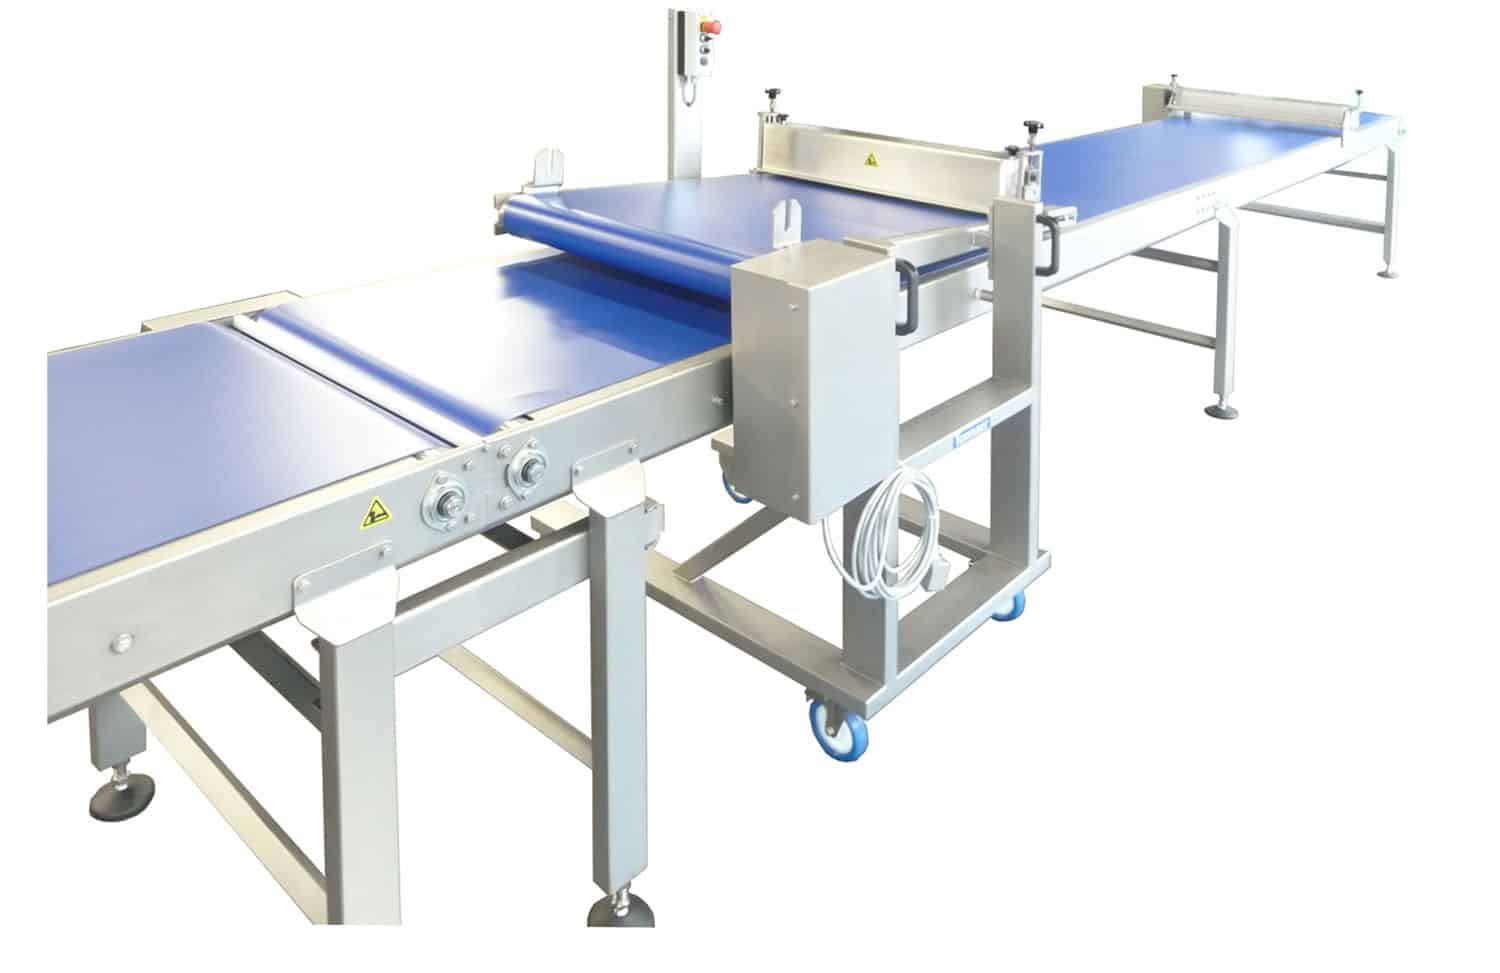 Semi-automatic finishing line 05 Tonnaer Mixing Systems